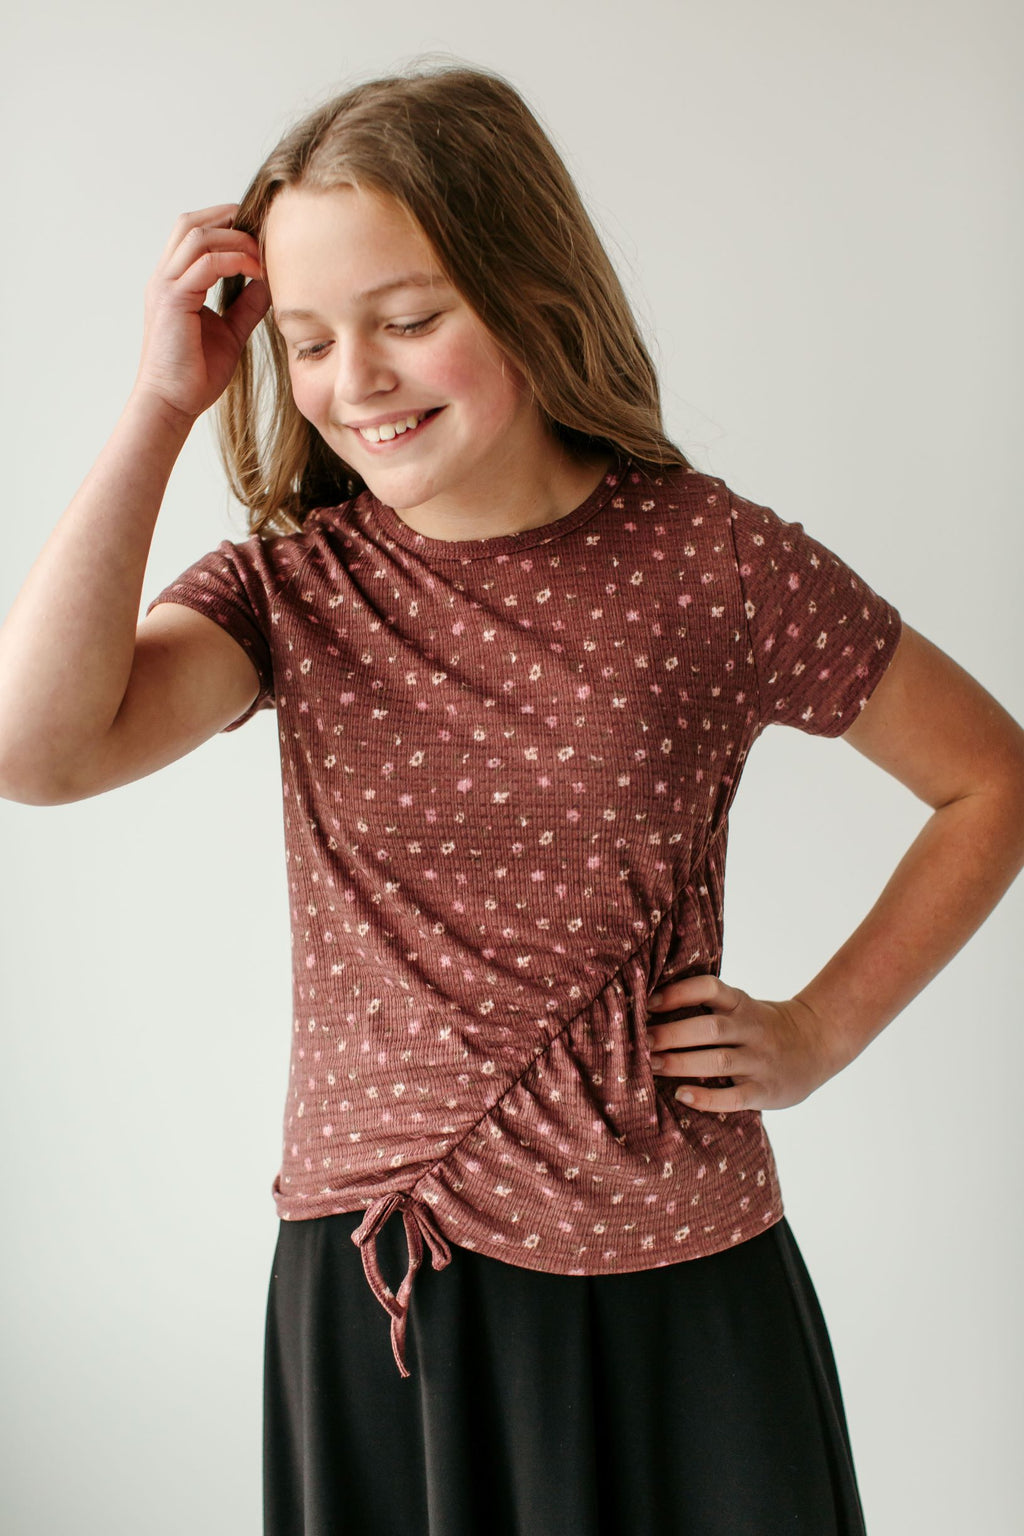 'Marisa' Girl Floral Cinched Top in Muted Burgundy